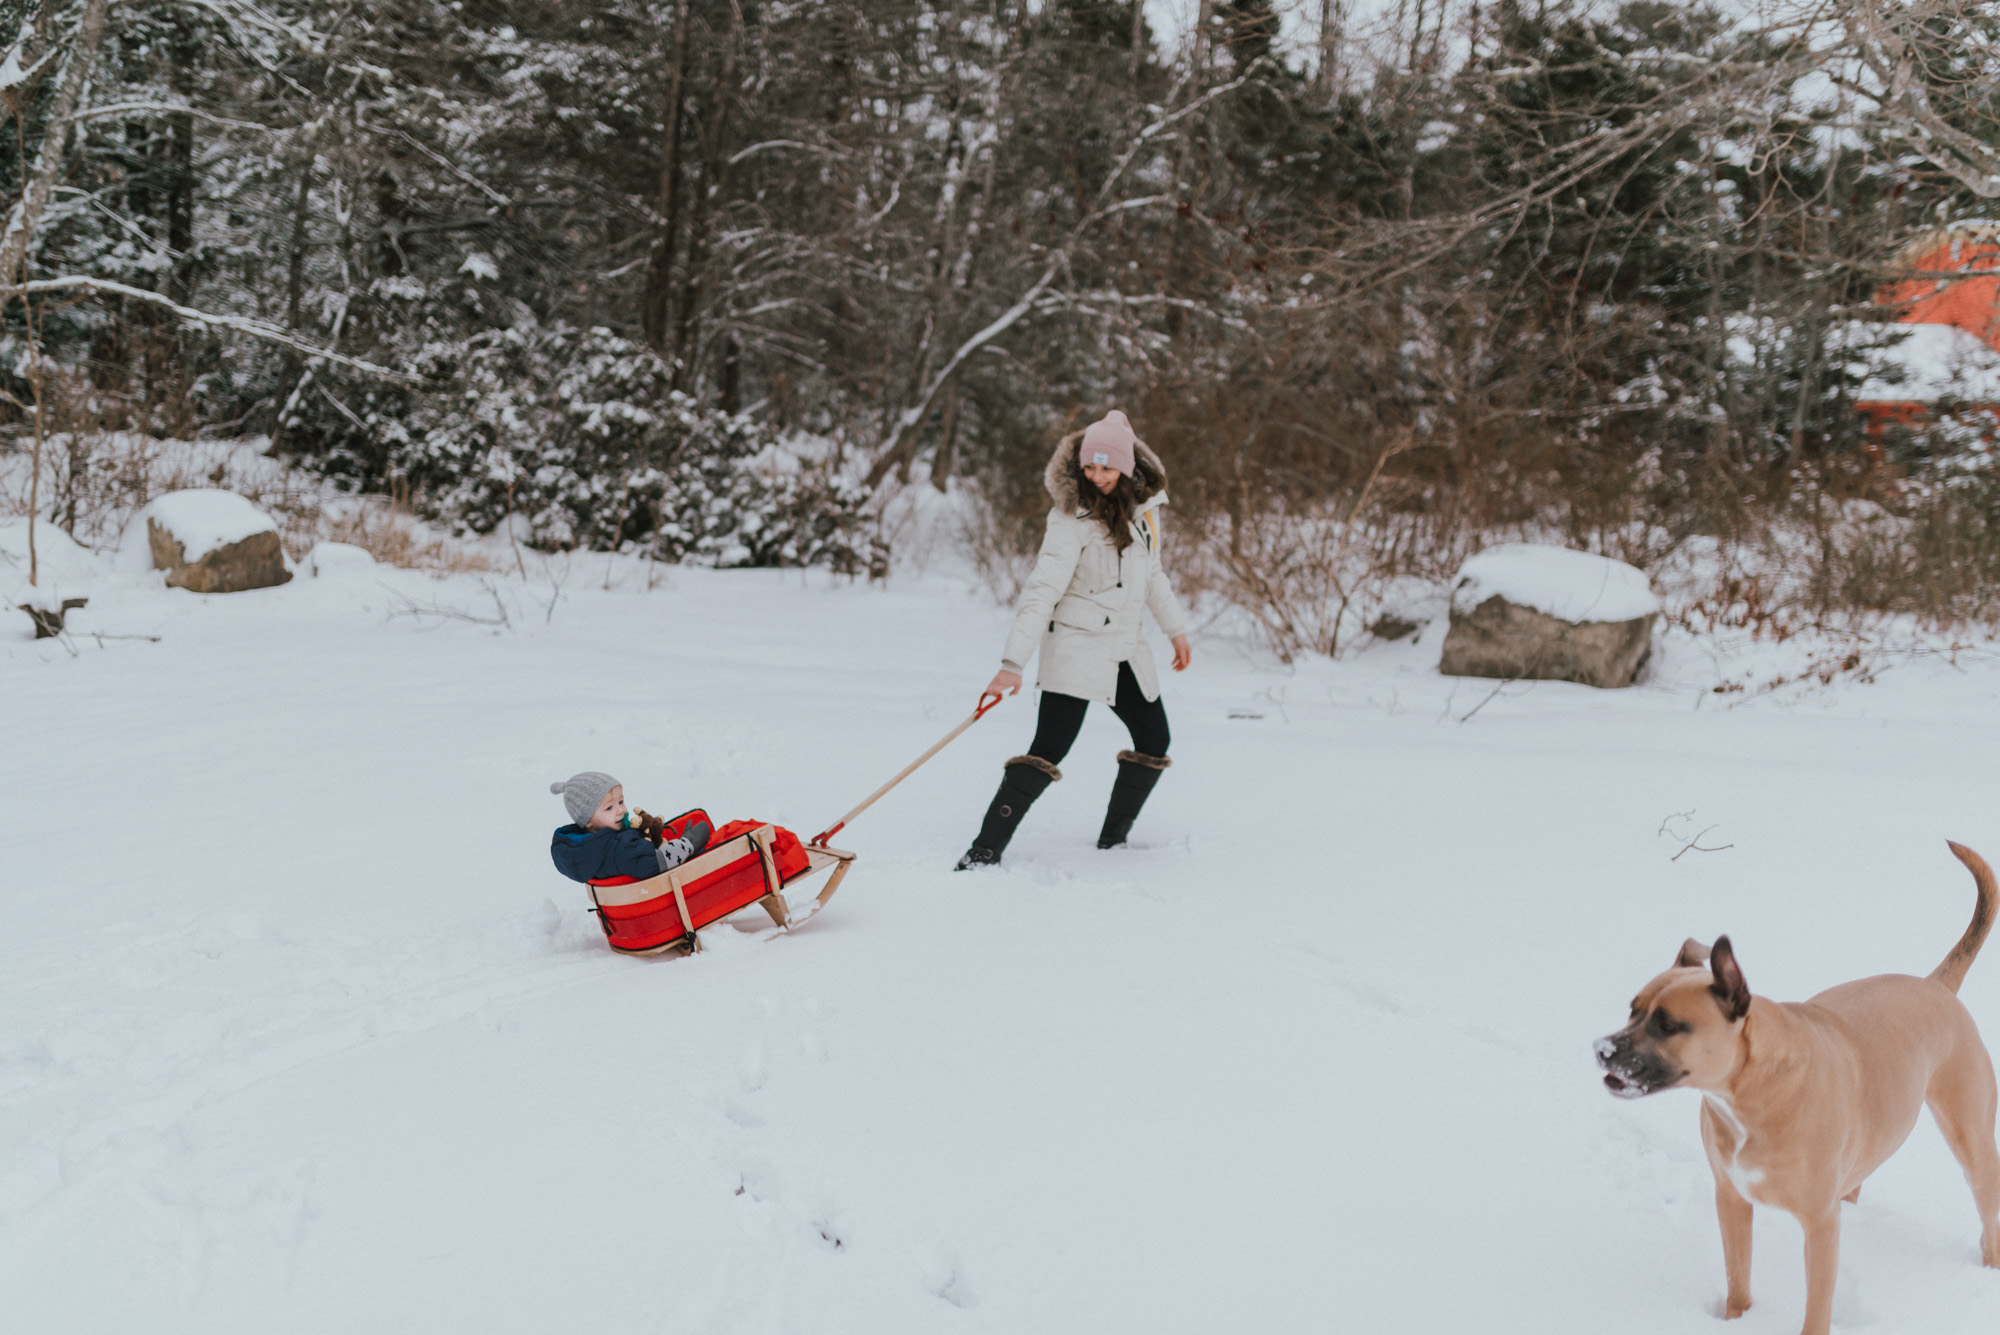 The Wild Decoelis | Winter Activities In Nova Scotia | Parajumper Parka, wooden sleigh for baby